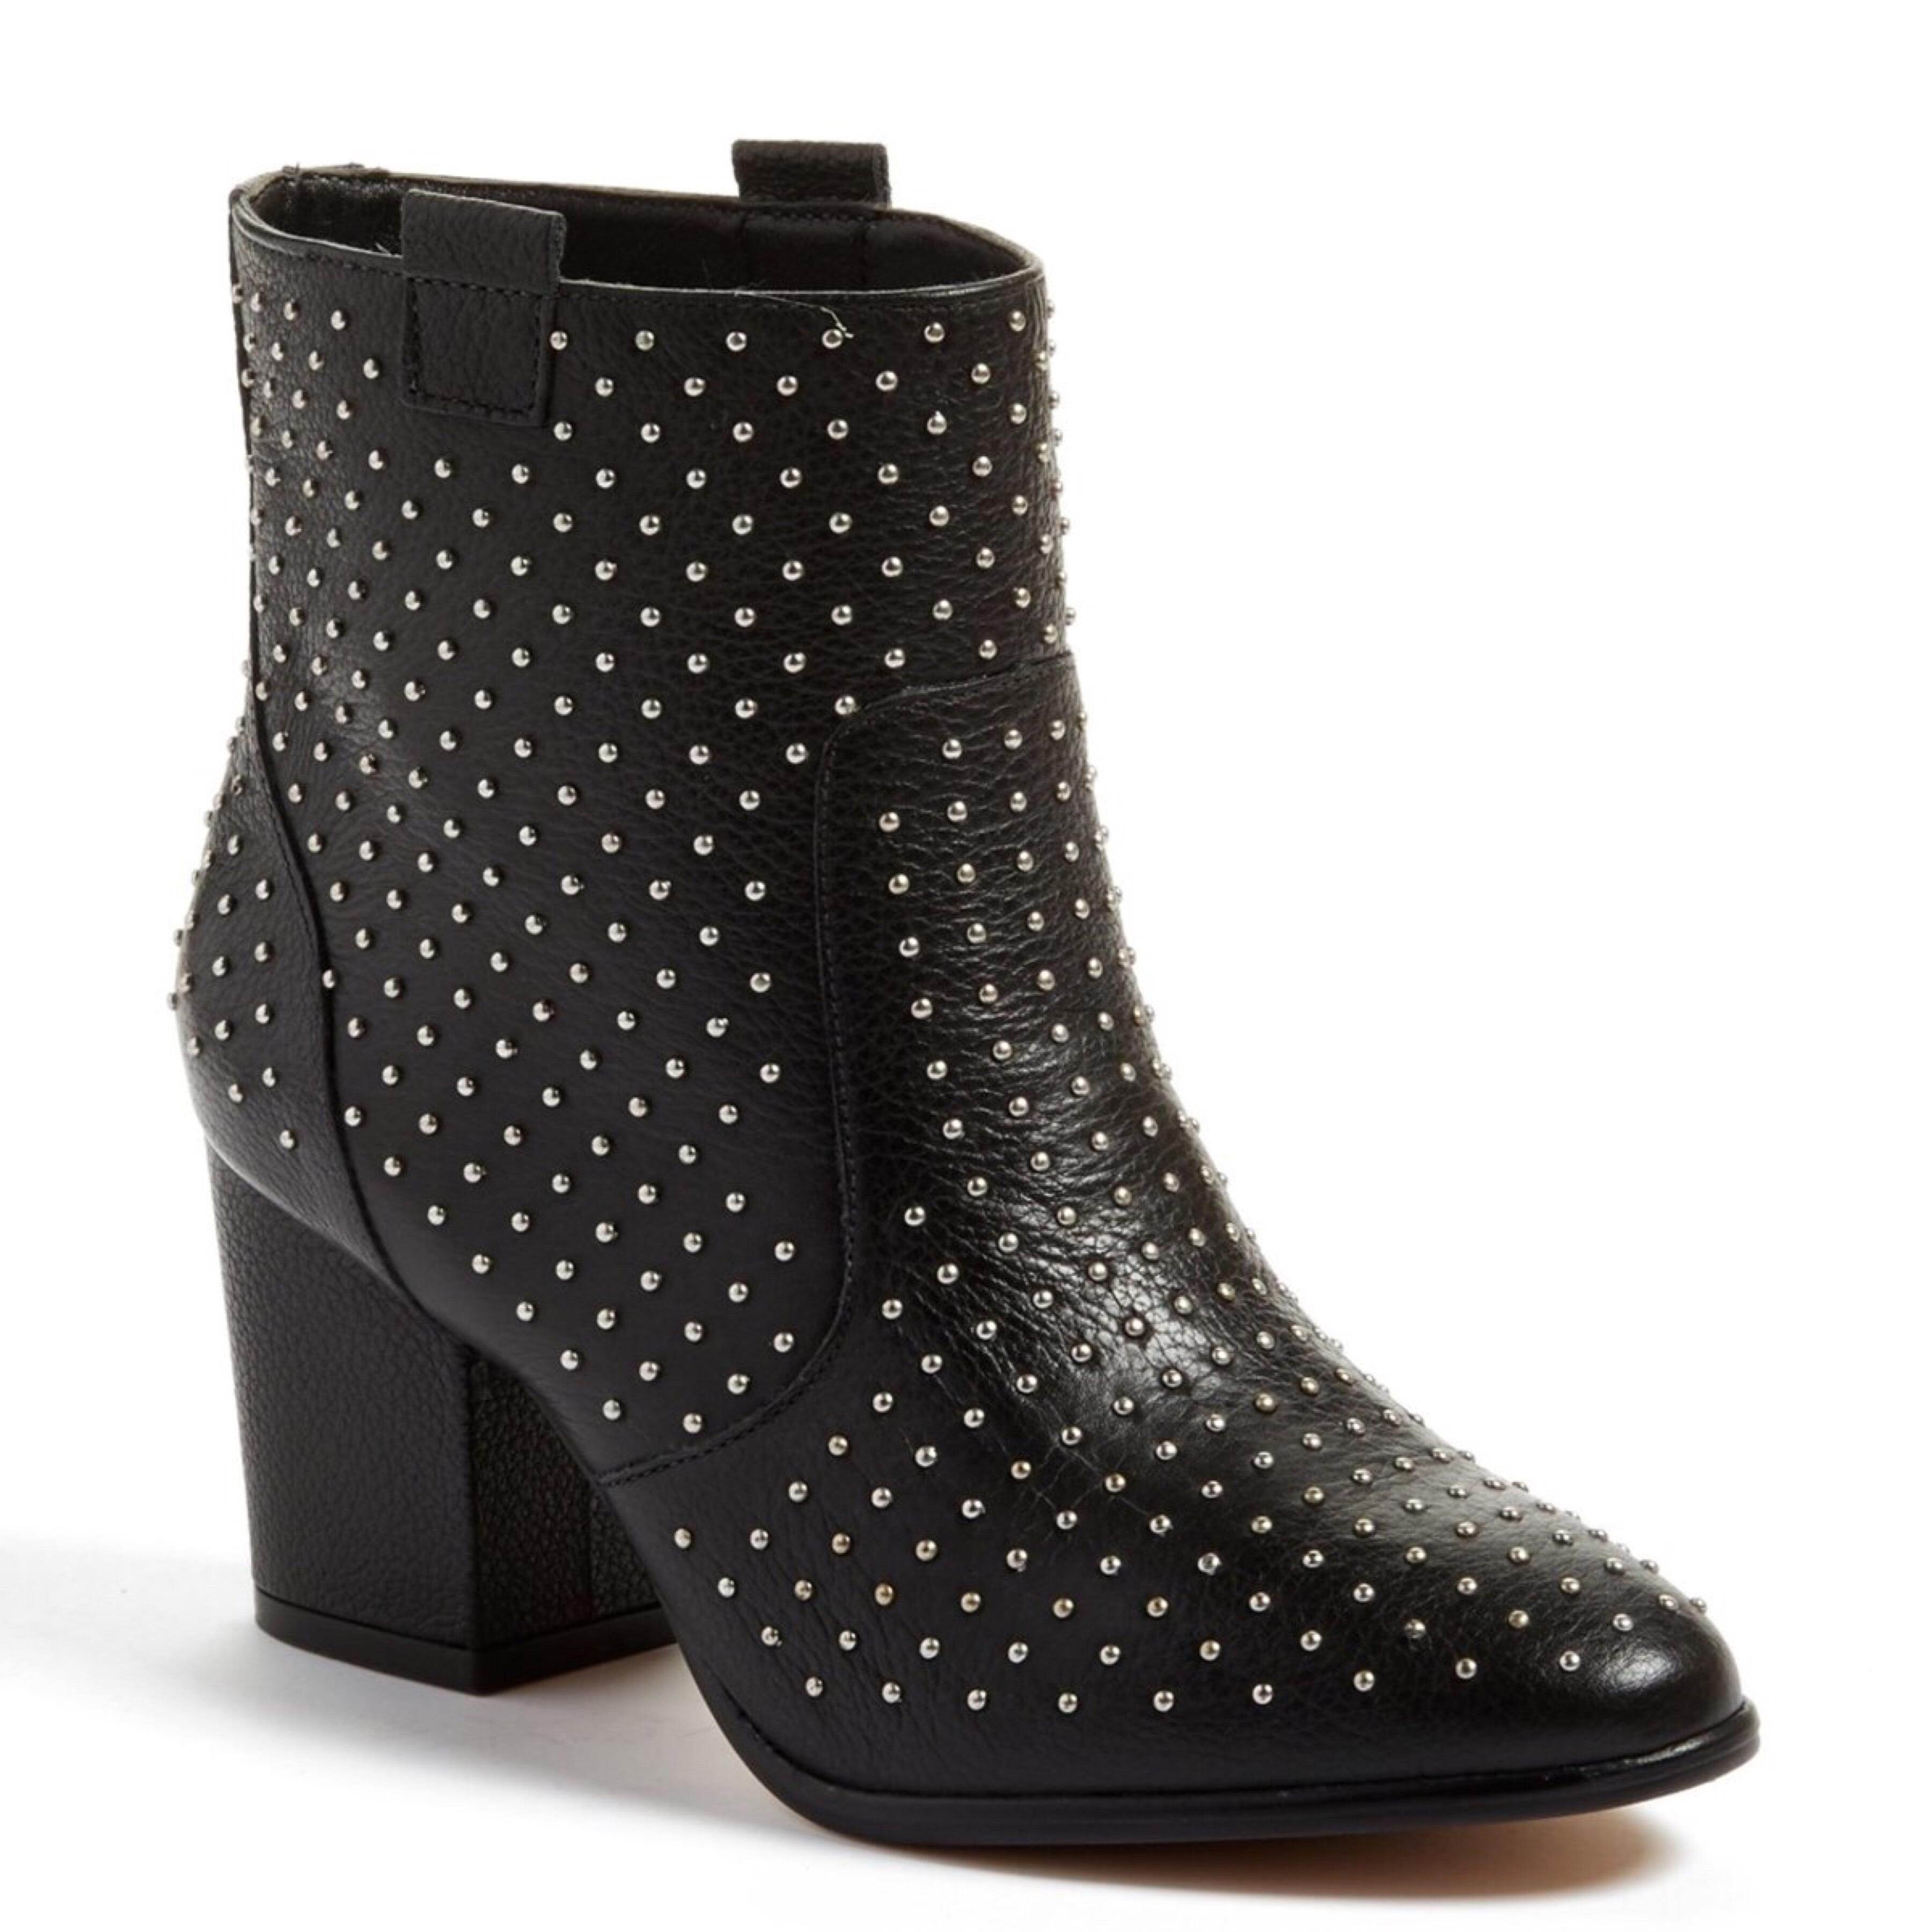 explore for sale Rebecca Minkoff Studded Ankle Boots clearance hot sale limited edition for sale cheap footlocker finishline sale how much 7XabXa